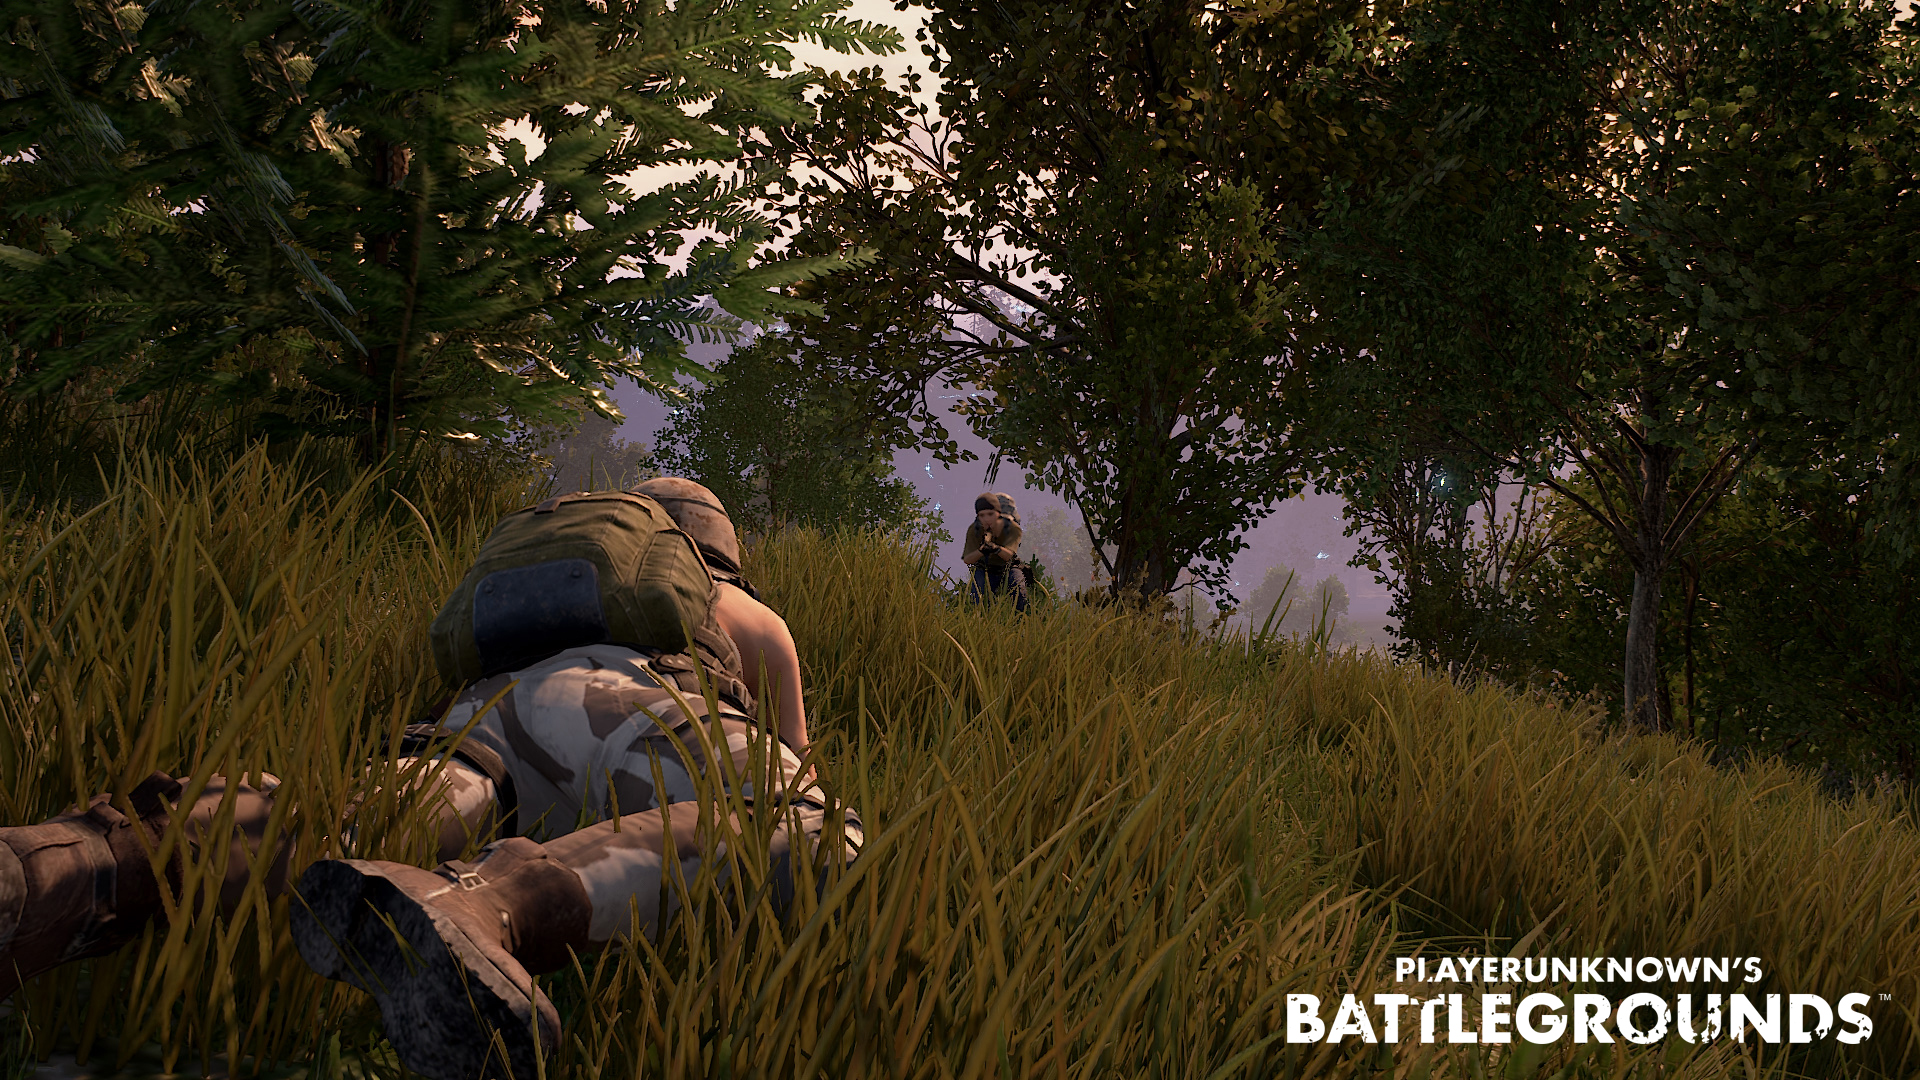 PLAYERUNKNOWNu0027S BATTLEGROUNDS Backgrounds 1920x1080